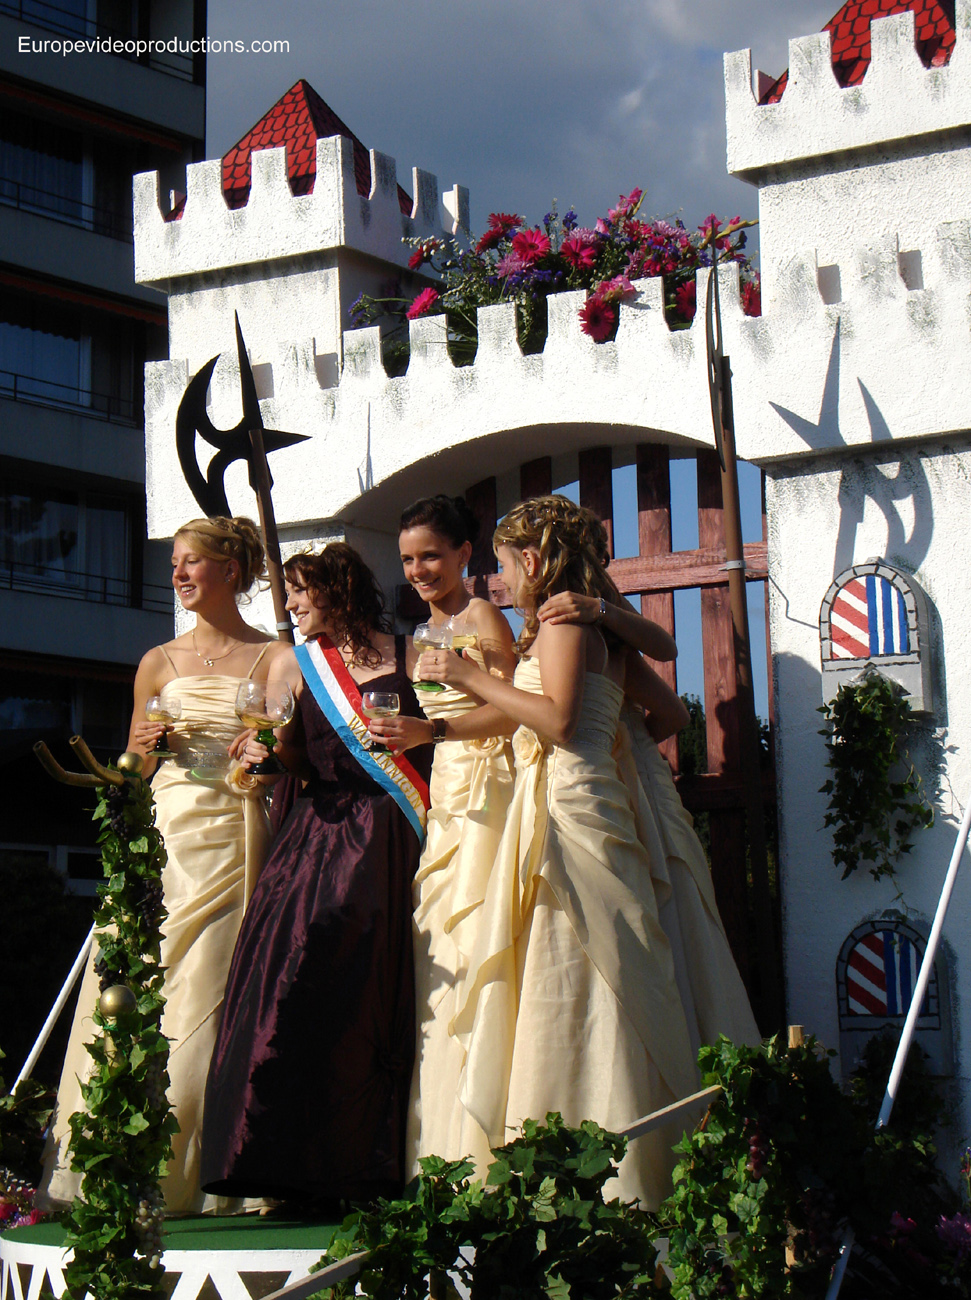 Wine festival of Grevenmacher in the Moselle of Luxembourg